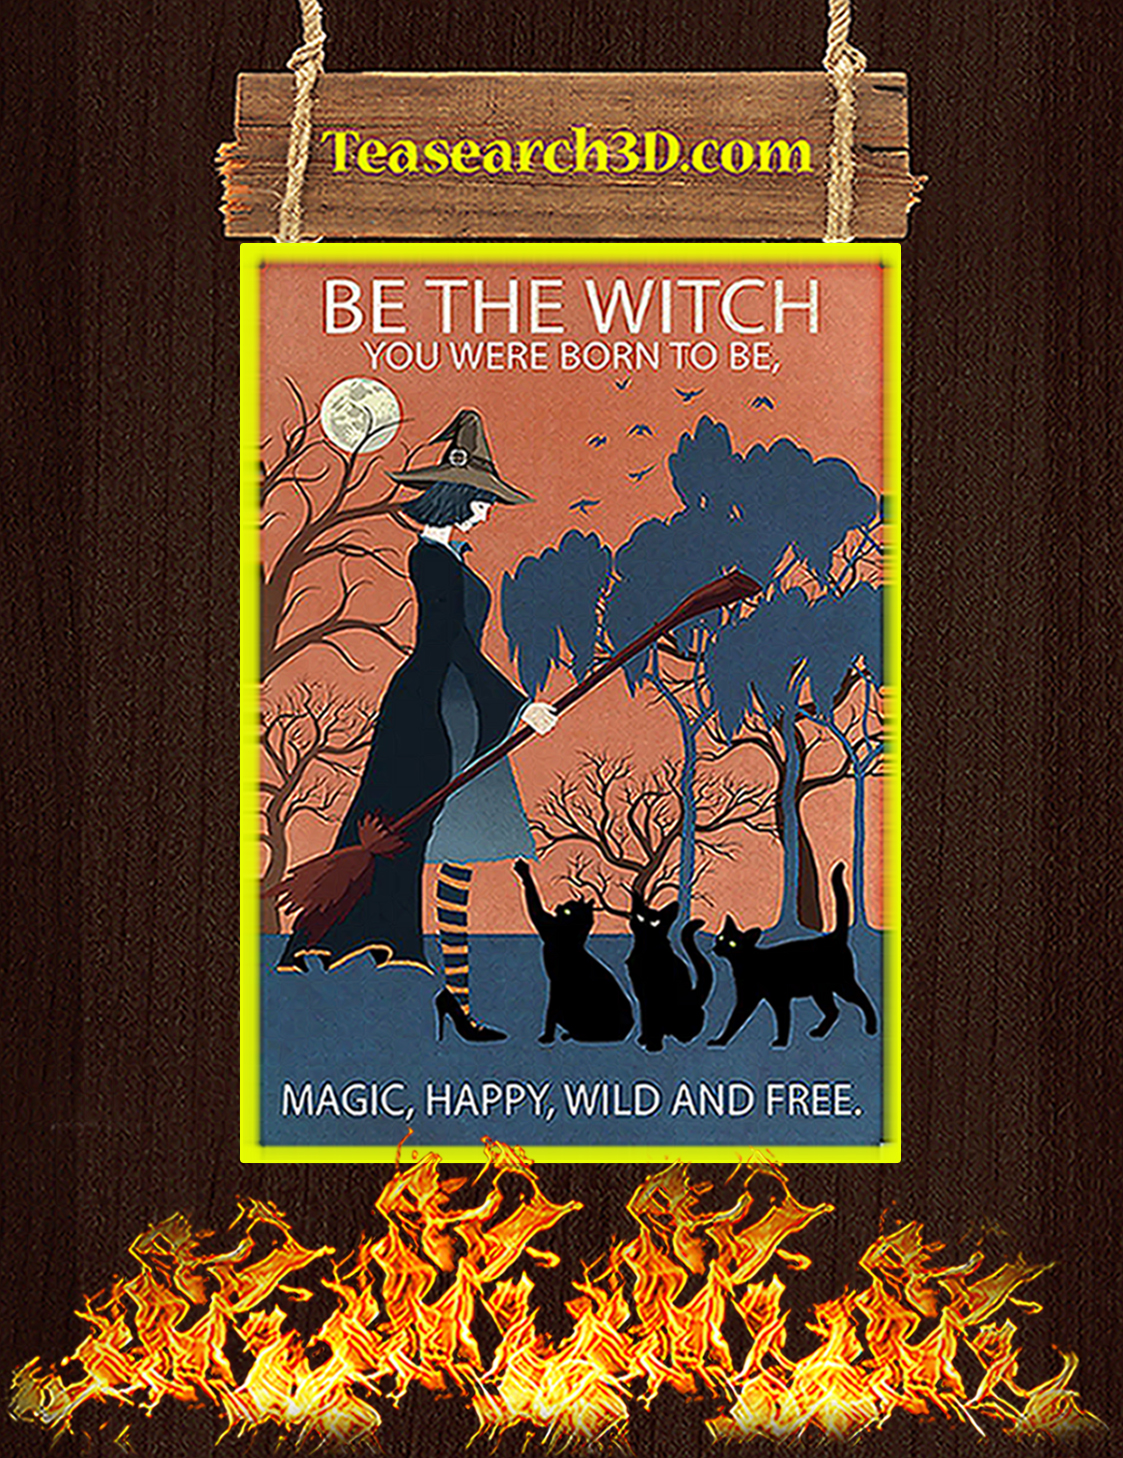 Be the witch you were born to be magic happy wild and free poster A3